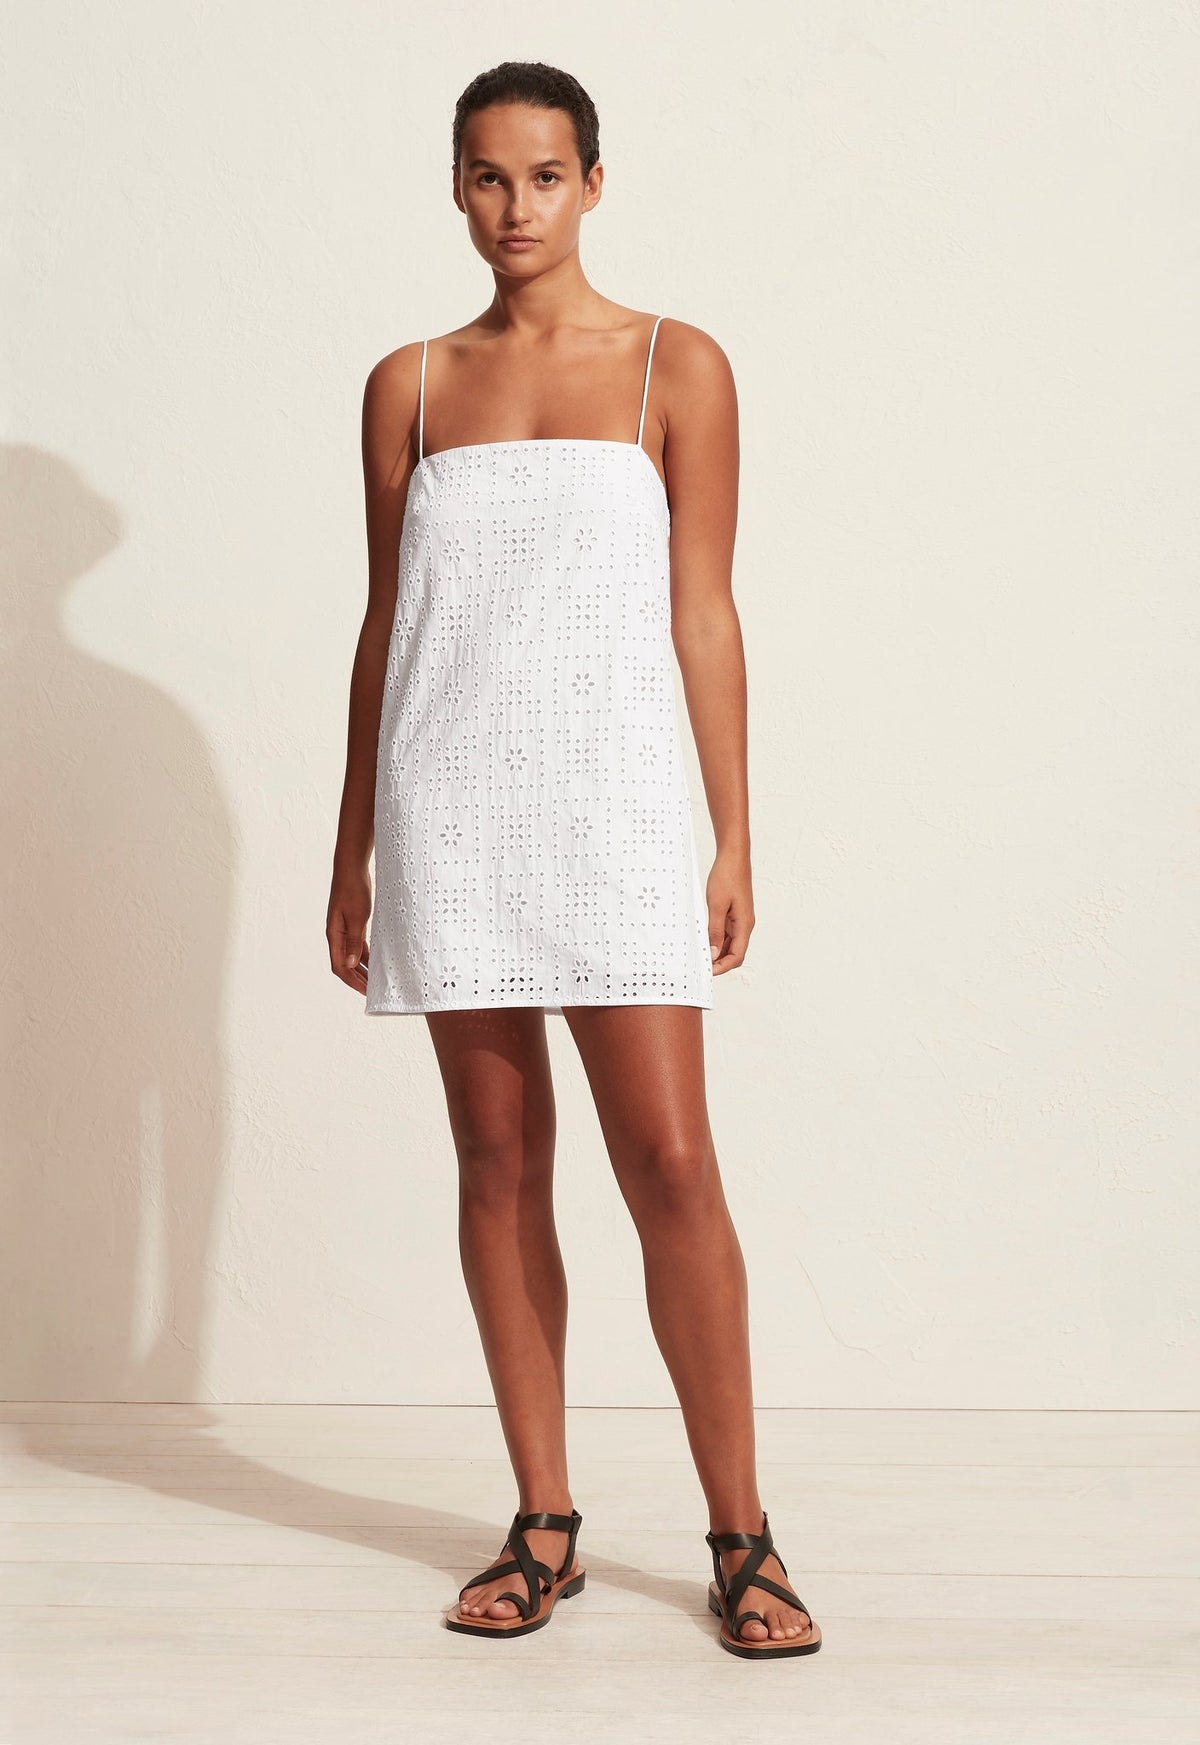 The Crochet Broderie Shift Dress